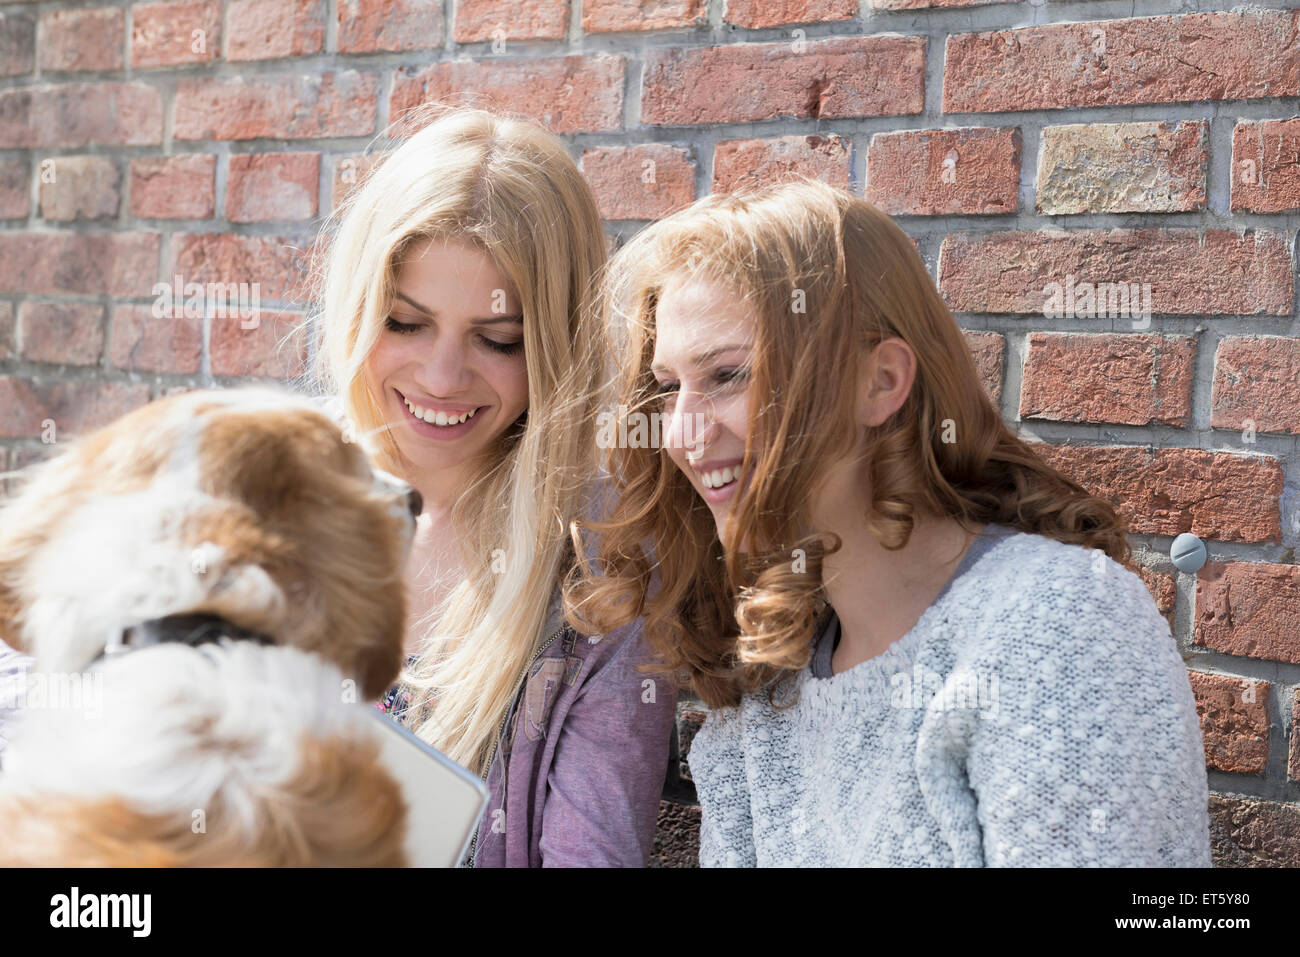 Two friends playing dog and smiling, Munich, Bavaria, Germany - Stock Image